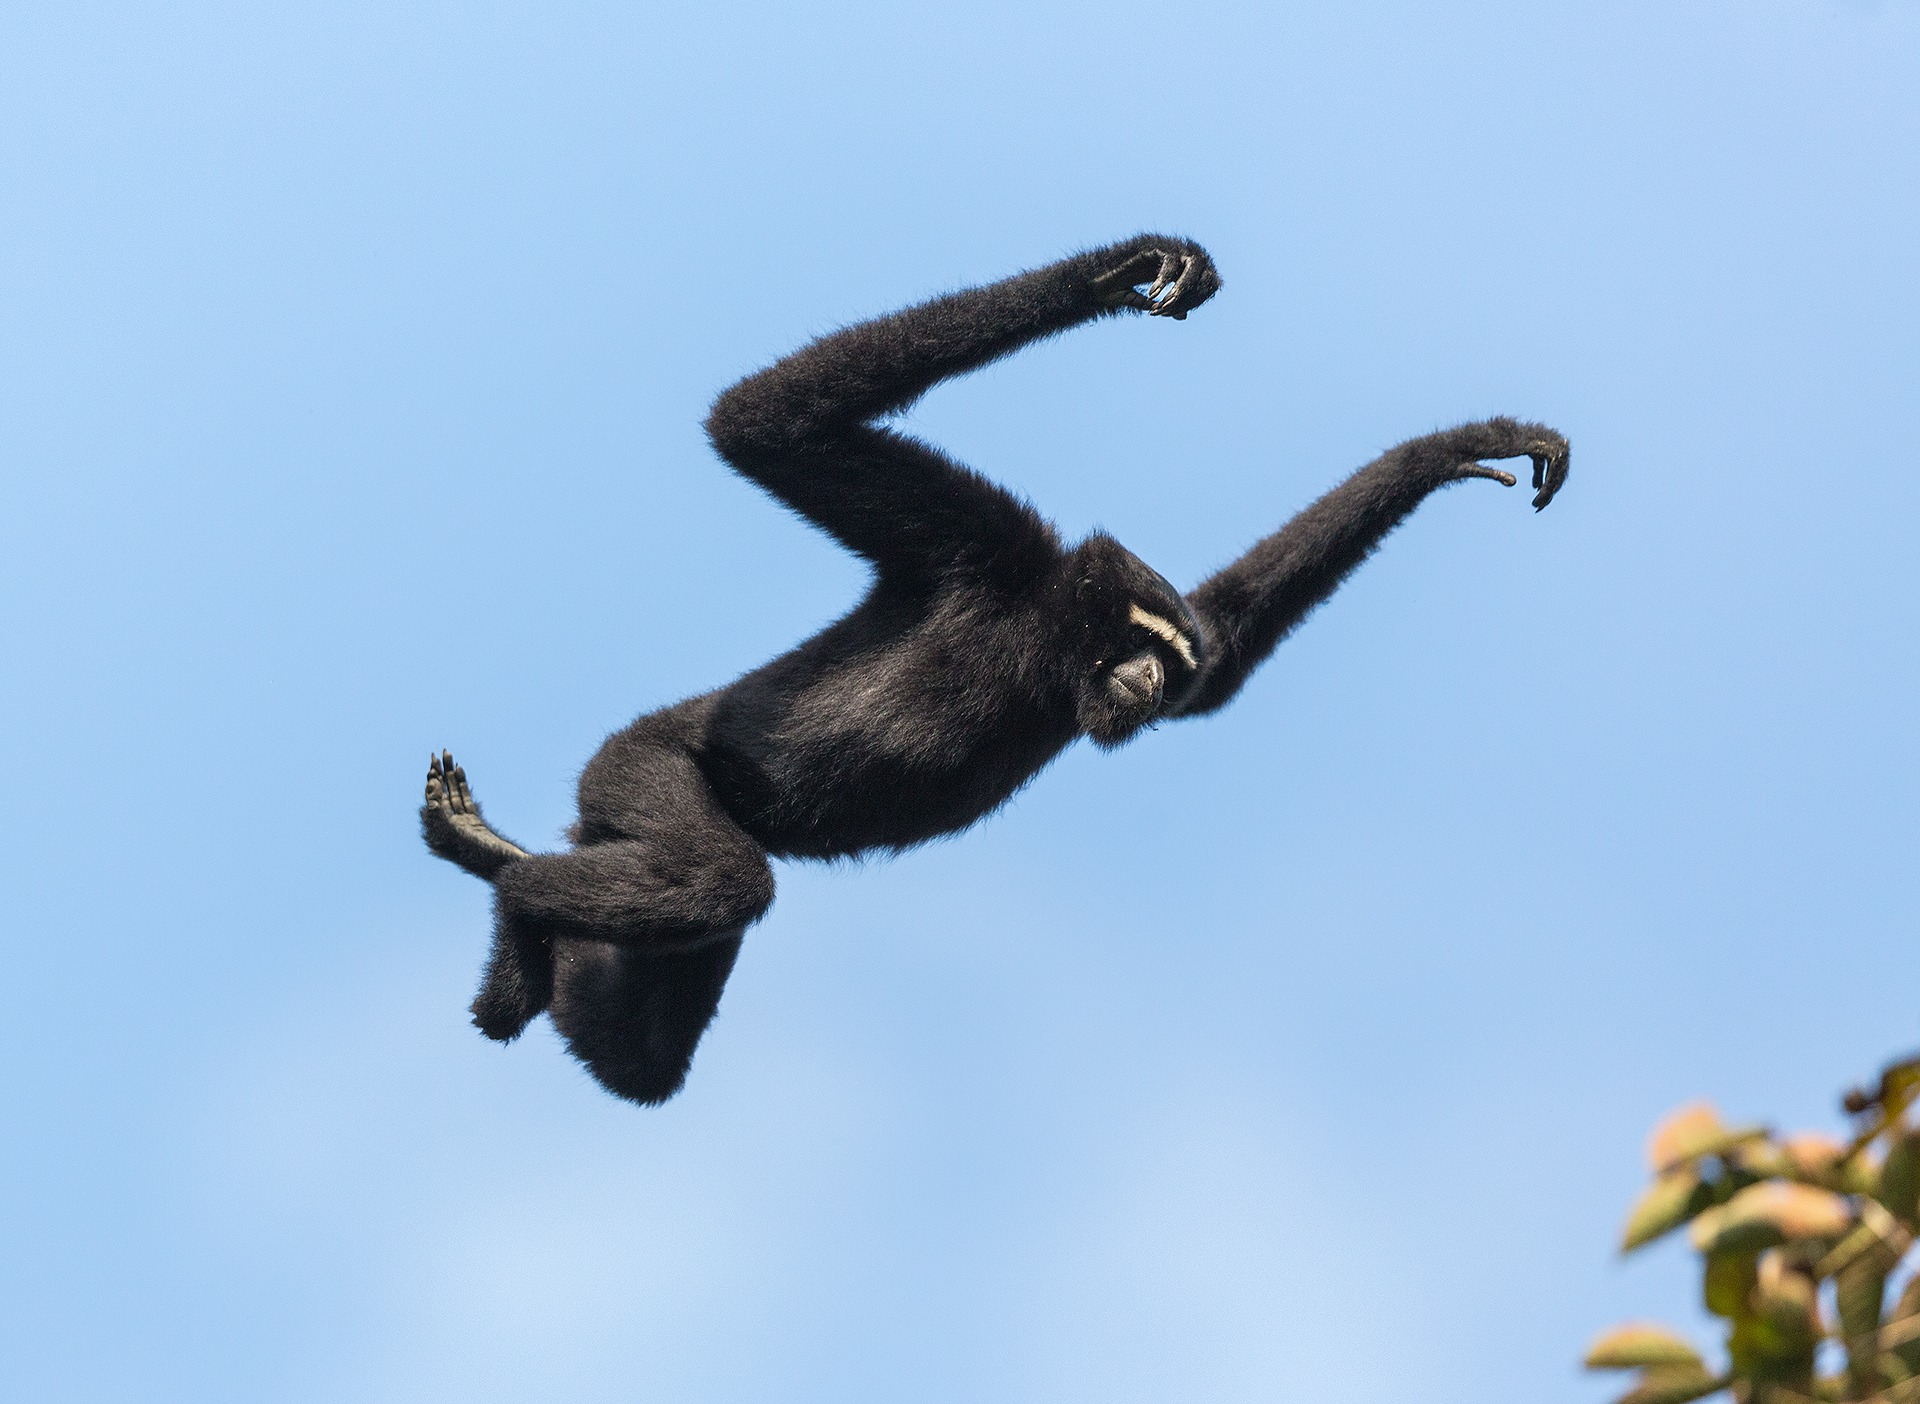 The gibbon's long, slender arms allow it to swing from one tree to another, covering up to six metres in one swing. Photo: Arindam Bhattacharya